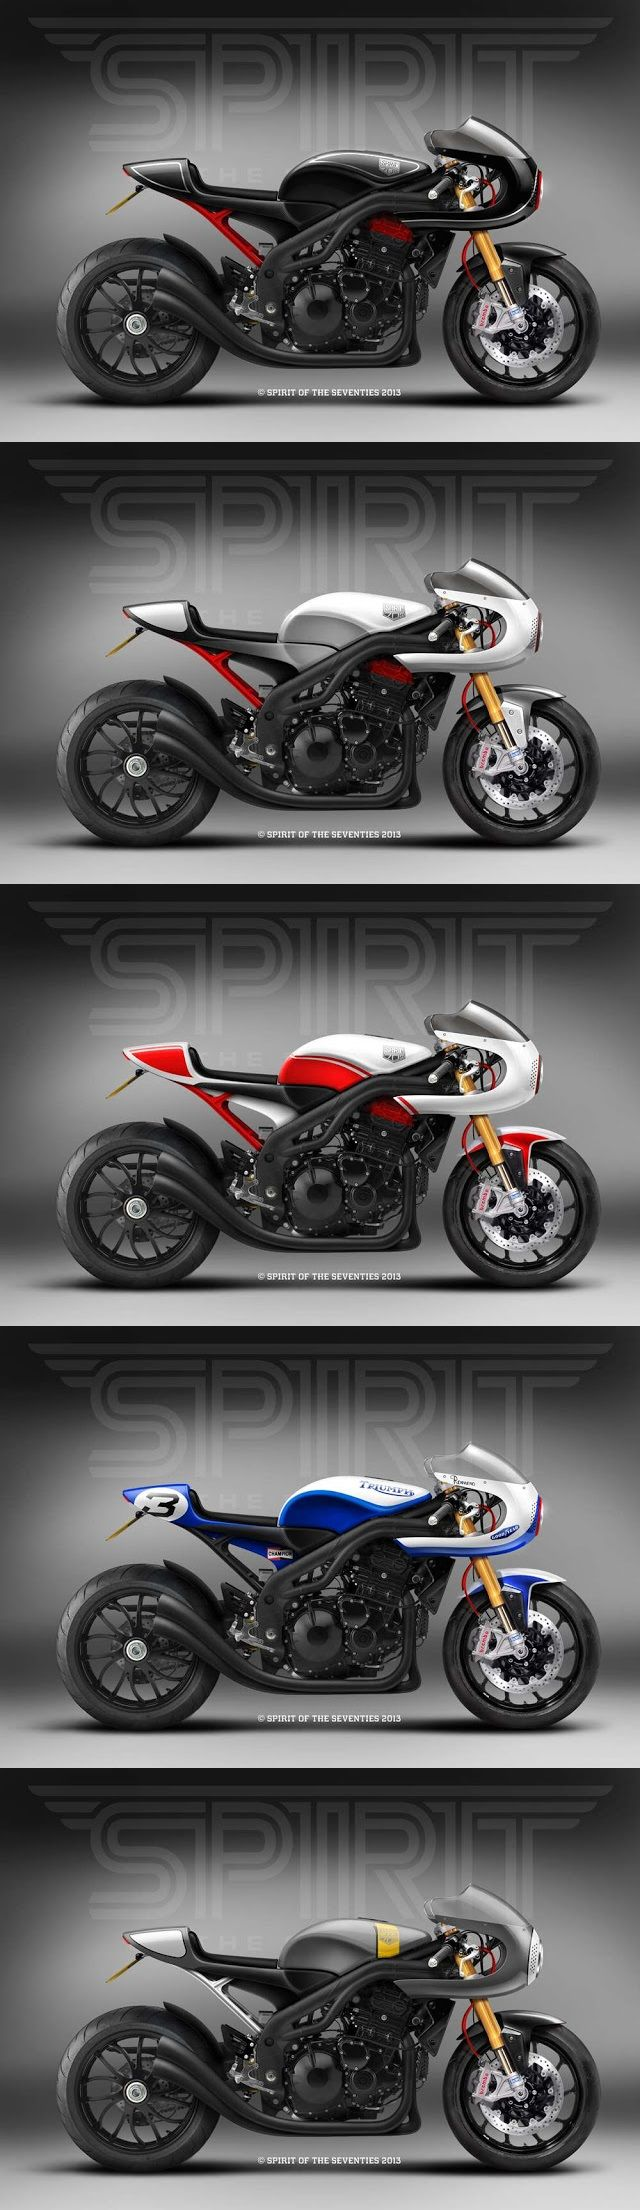 Speed Triple Racer concept